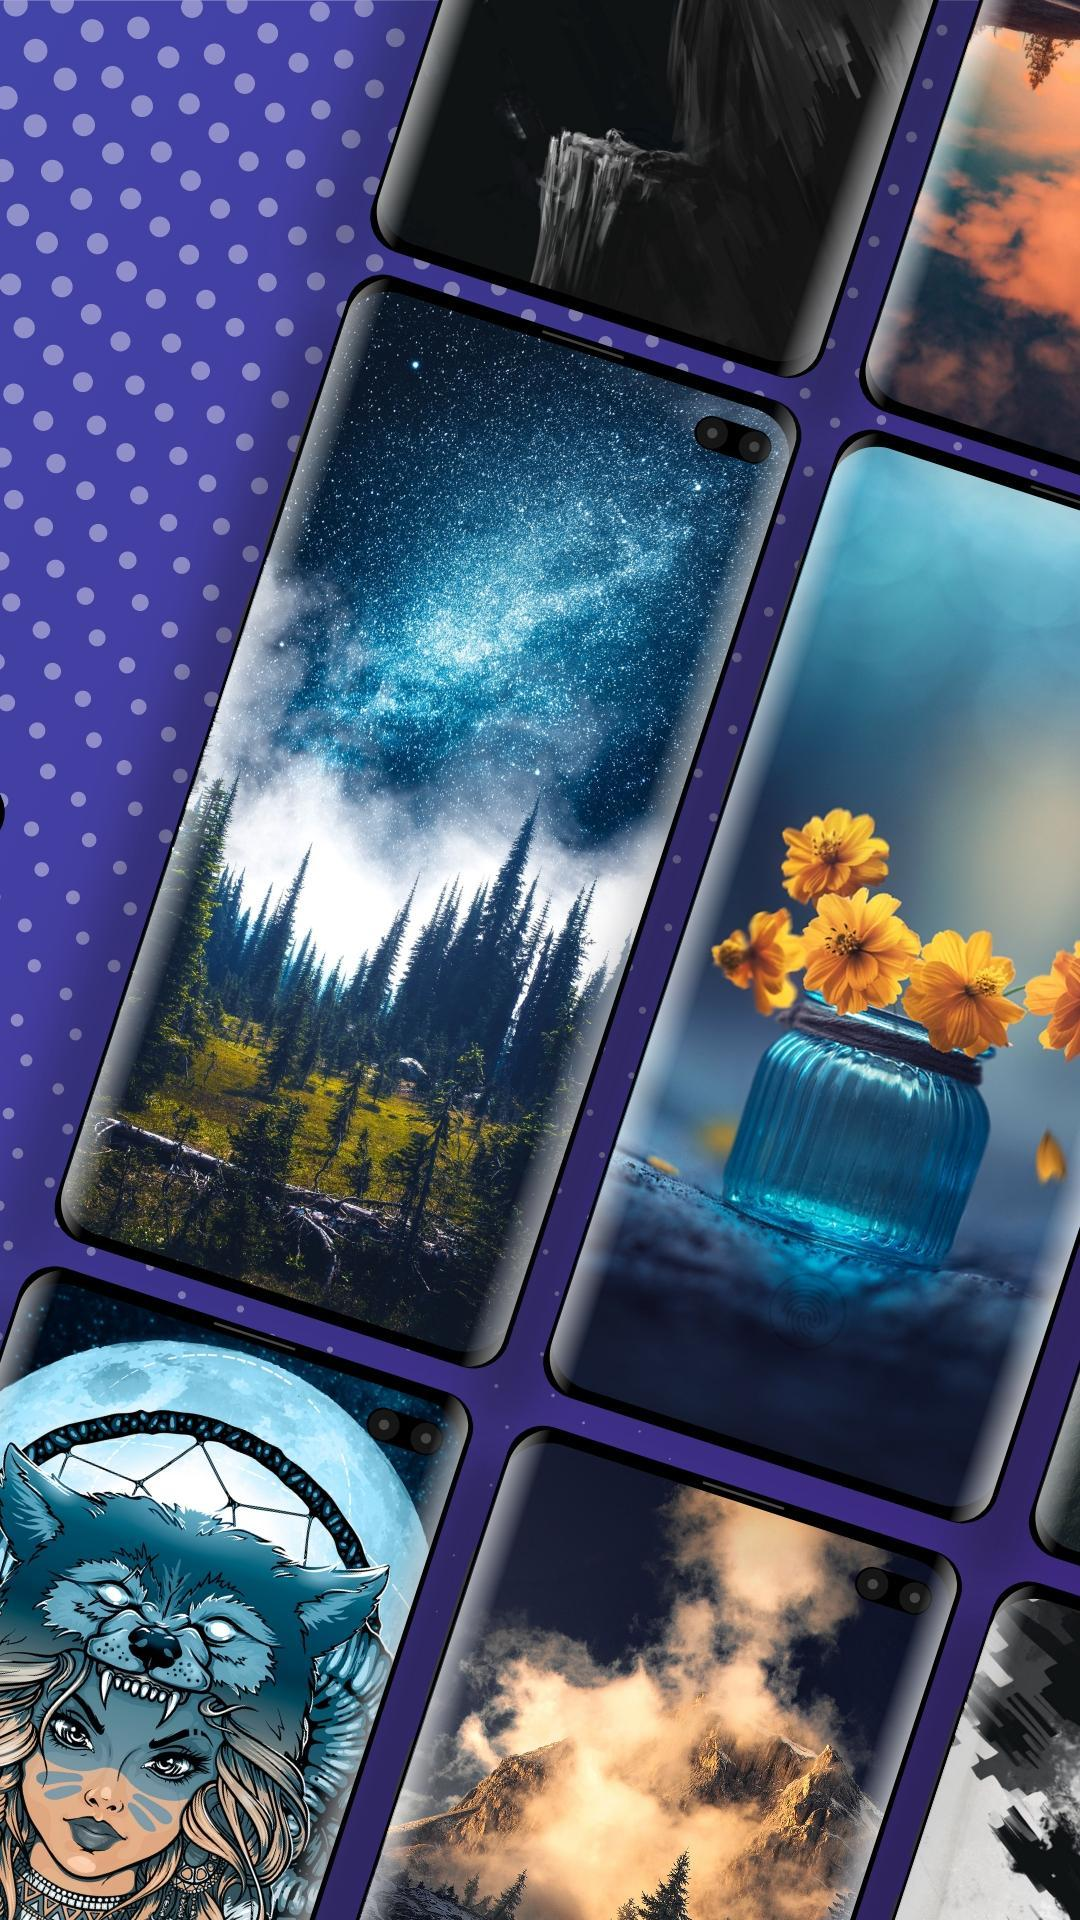 Wallpapers Ultra Hd 4k For Android Apk Download